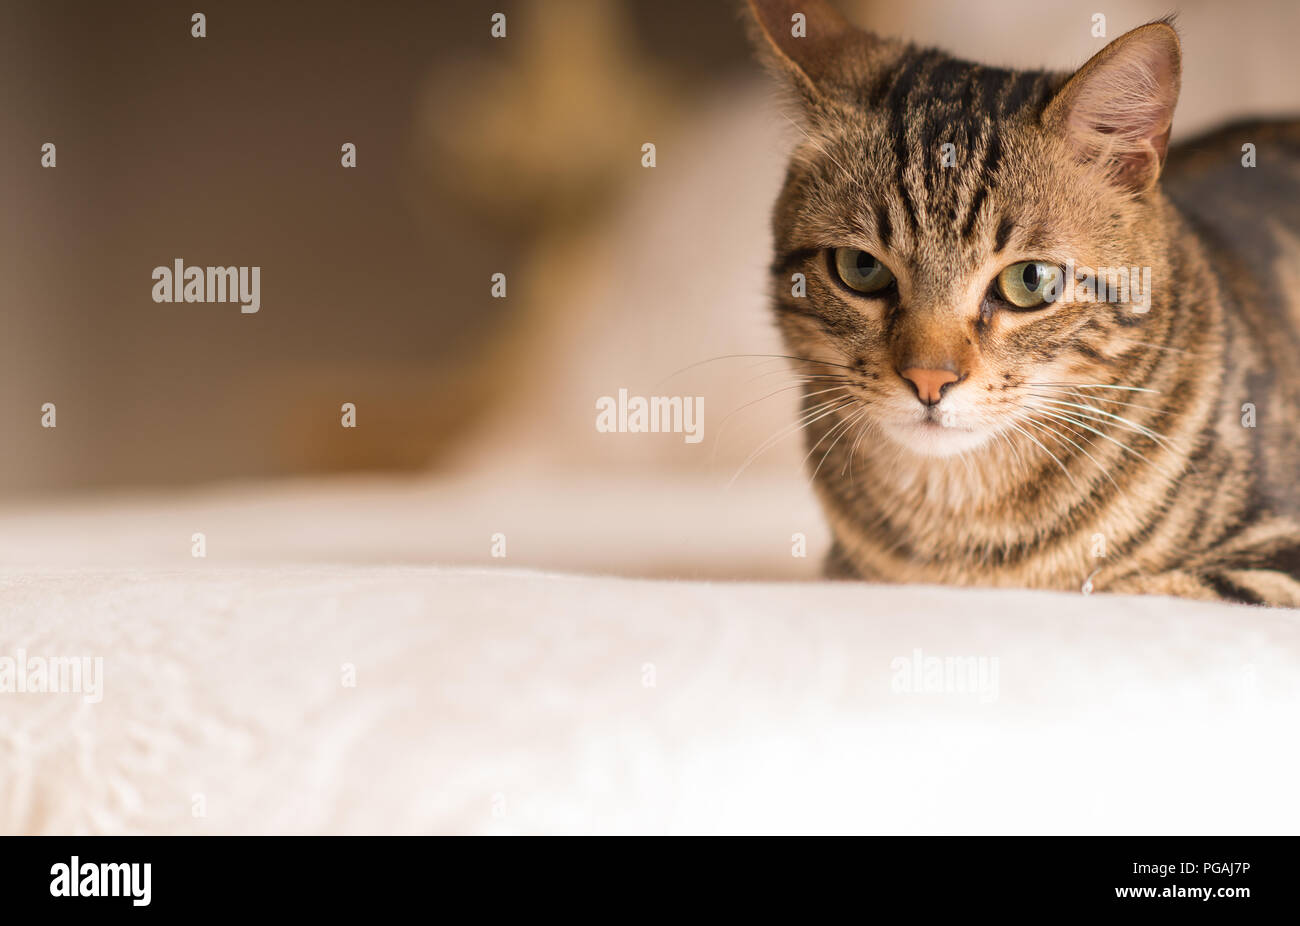 Beautiful domestic cat at home - Stock Image